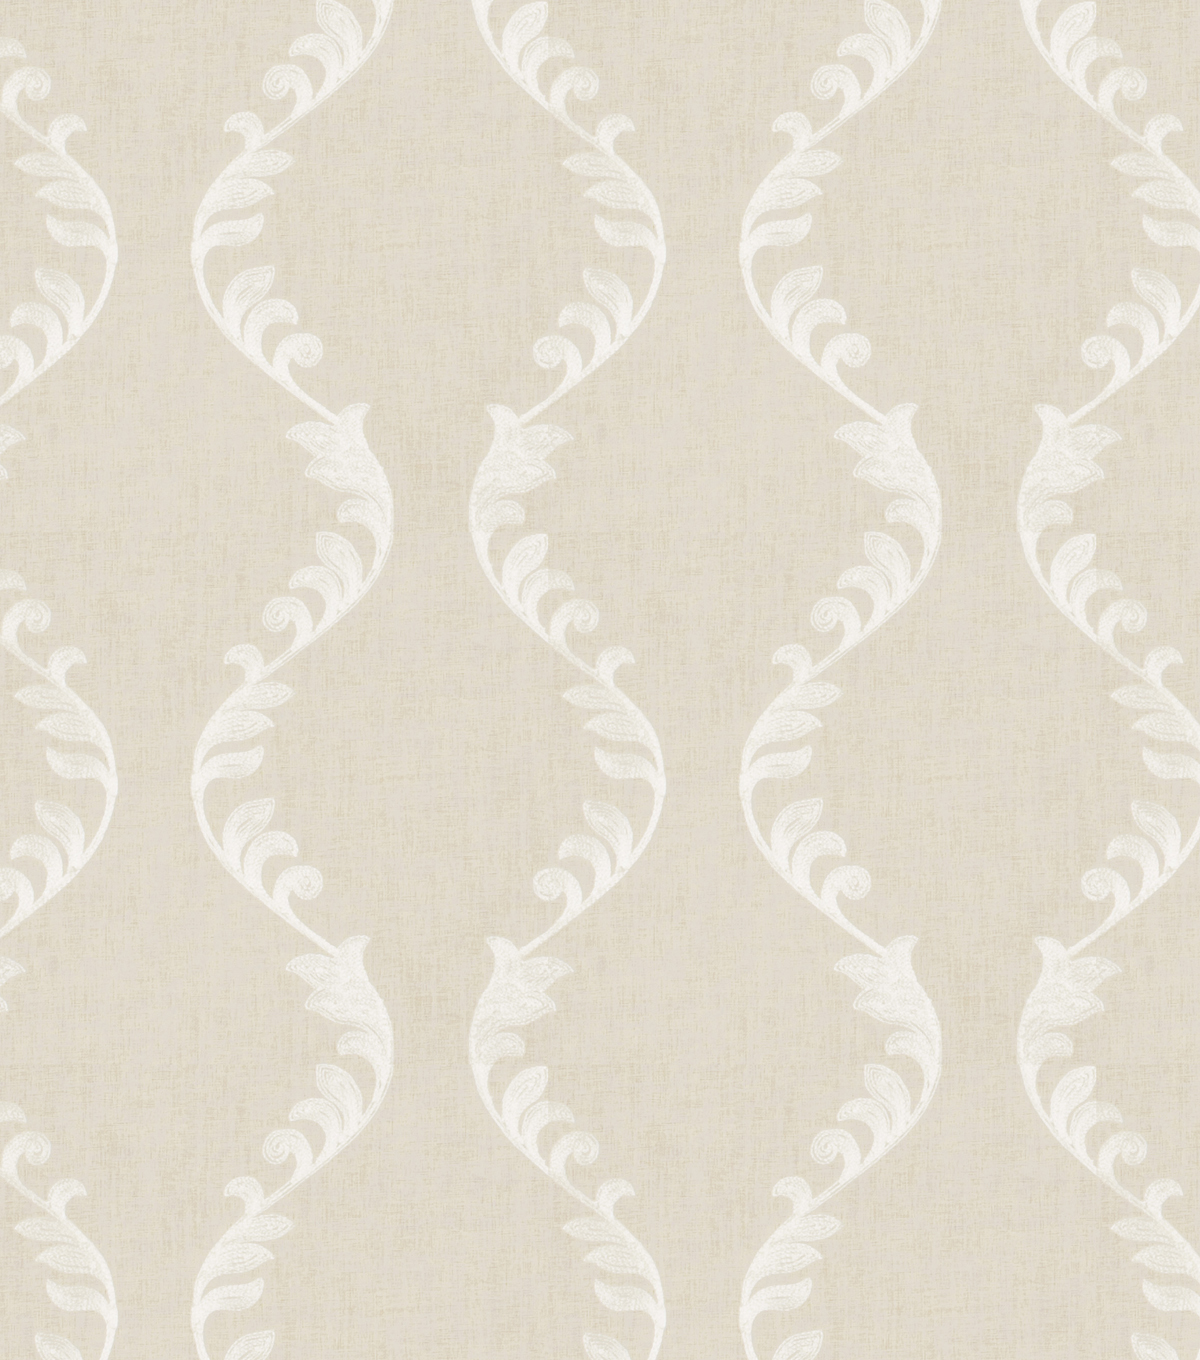 Eaton Square Sheer Fabric-Valley/Sand